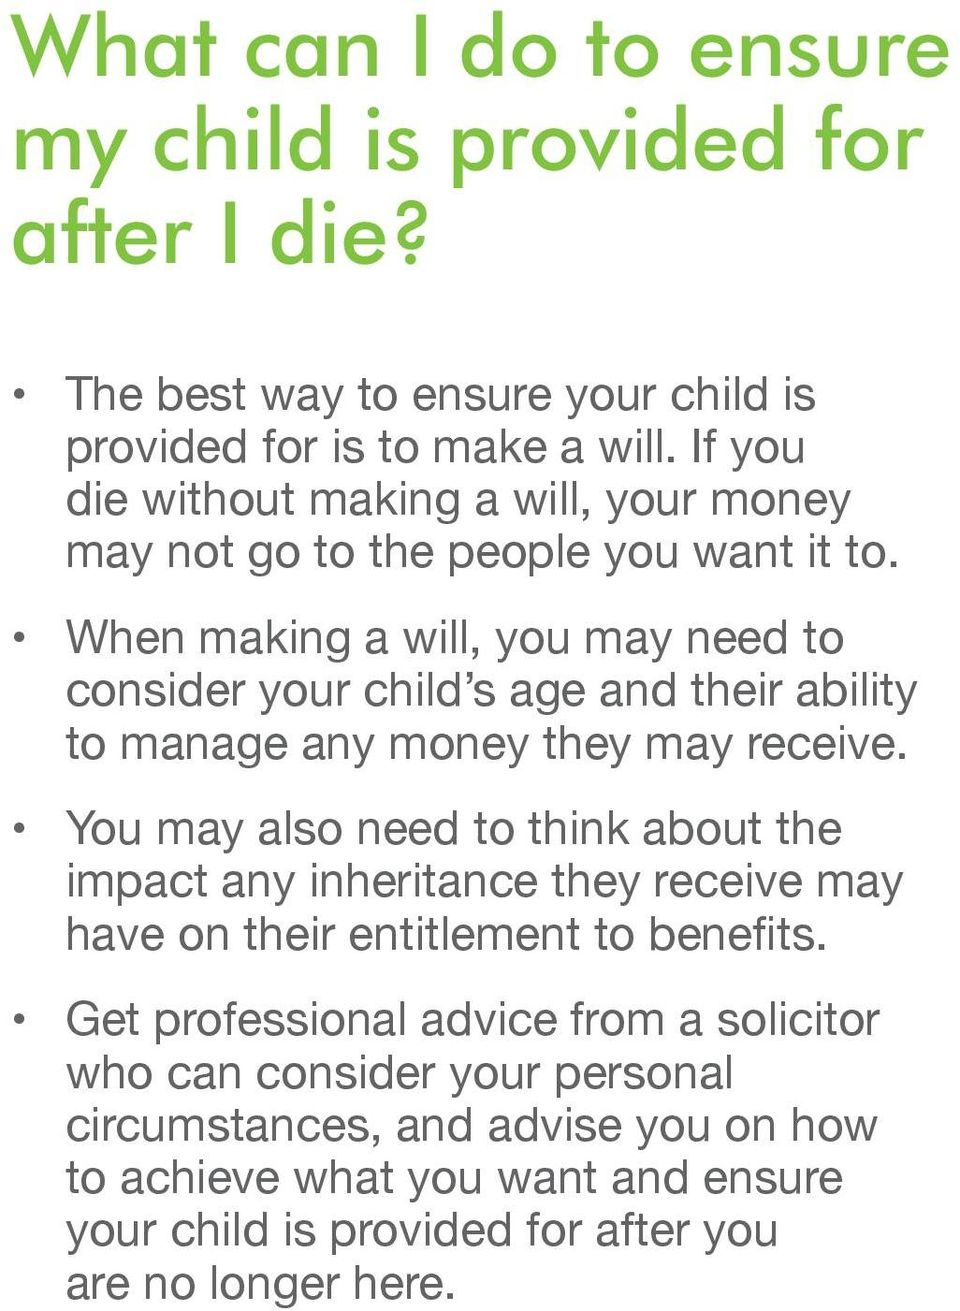 When making a will, you may need to consider your child s age and their ability to manage any money they may receive.